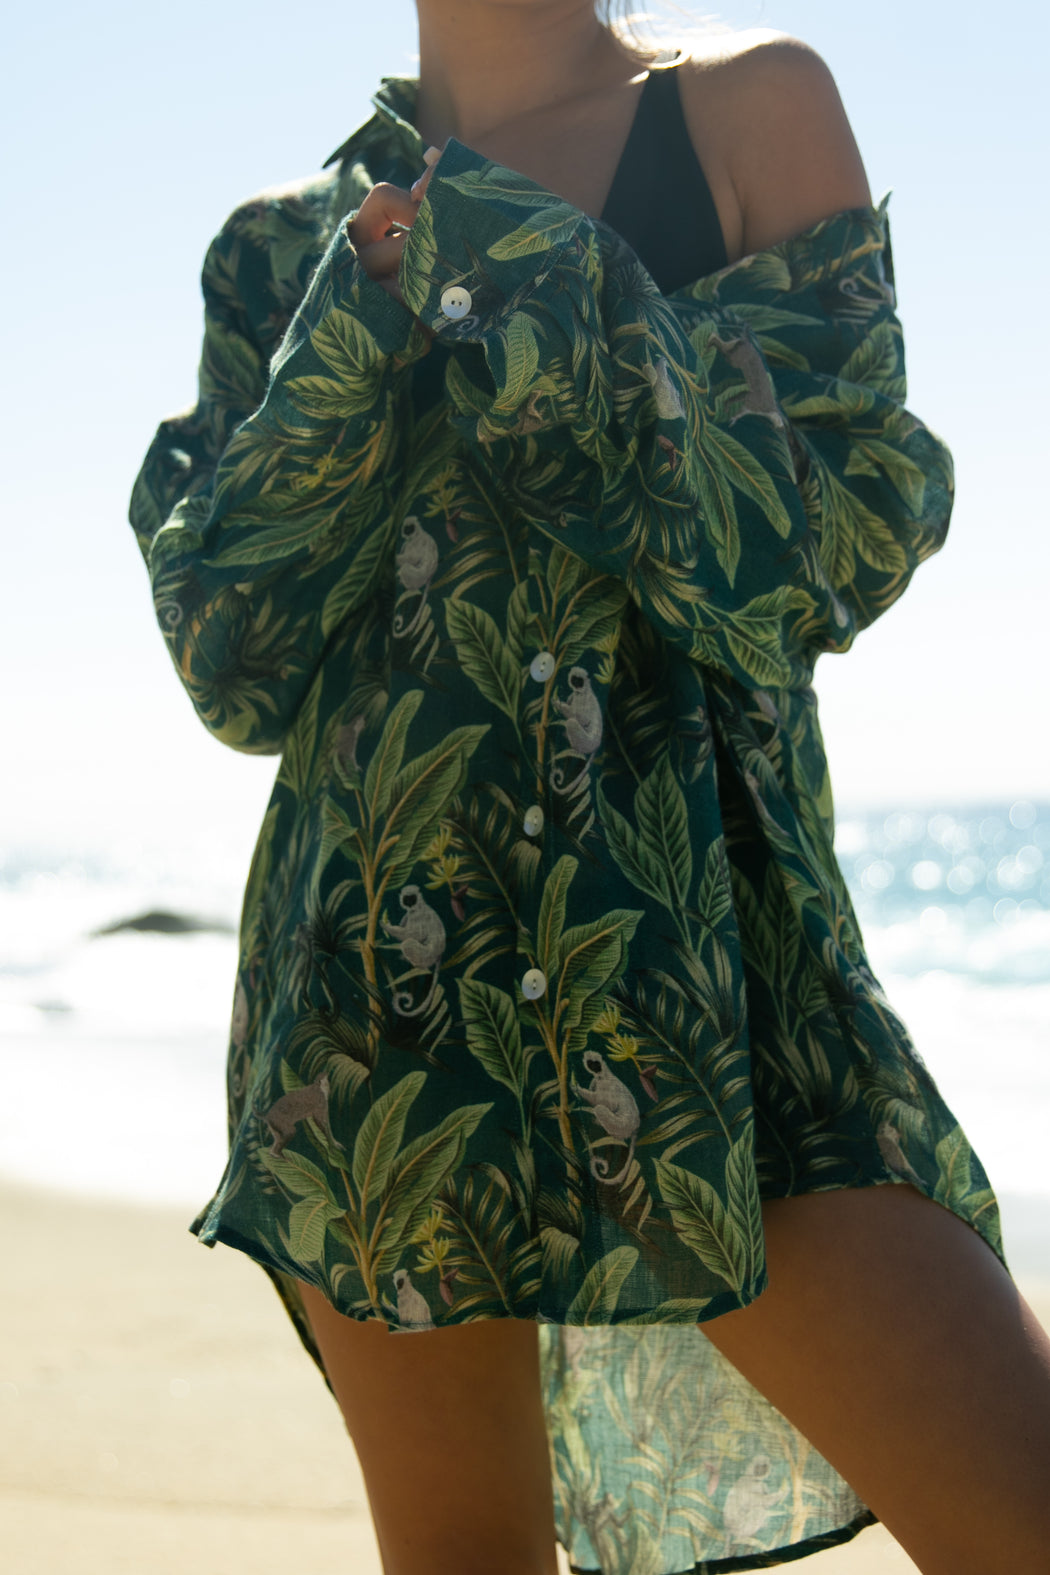 The Moonlight Breeze Shirt in Deep Jungle